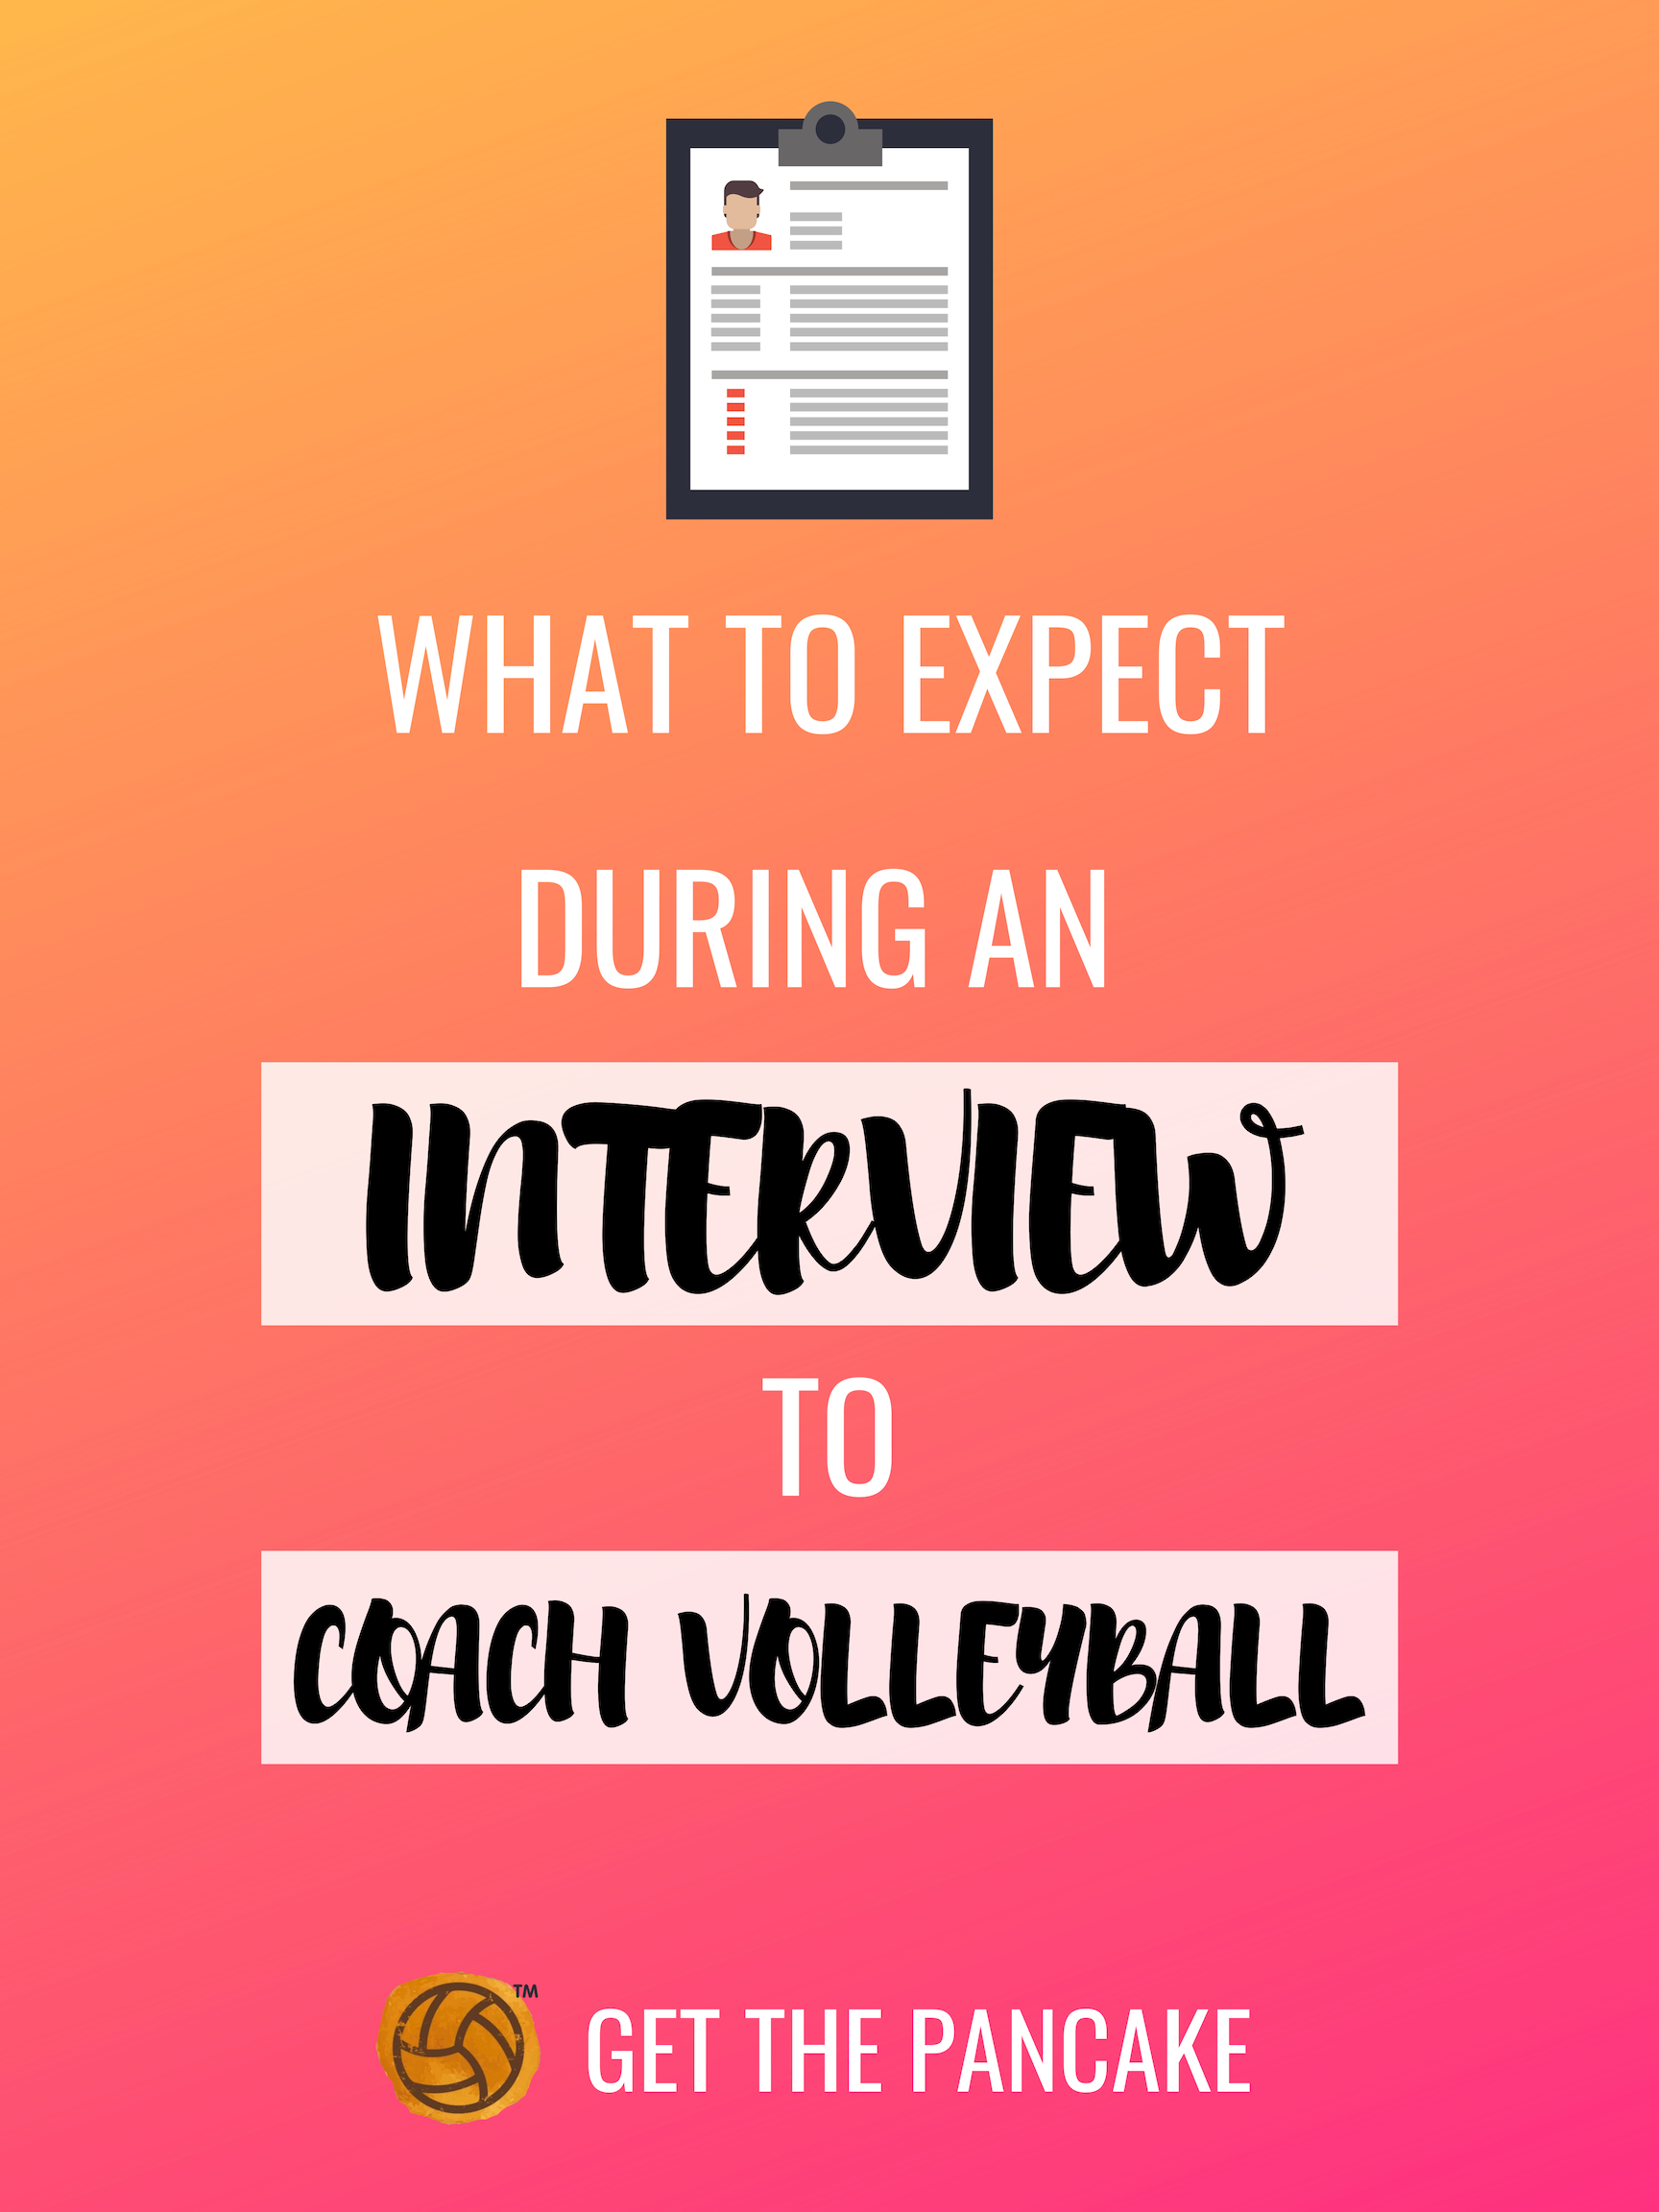 Tips For Volleyball Coach Interview.jpg